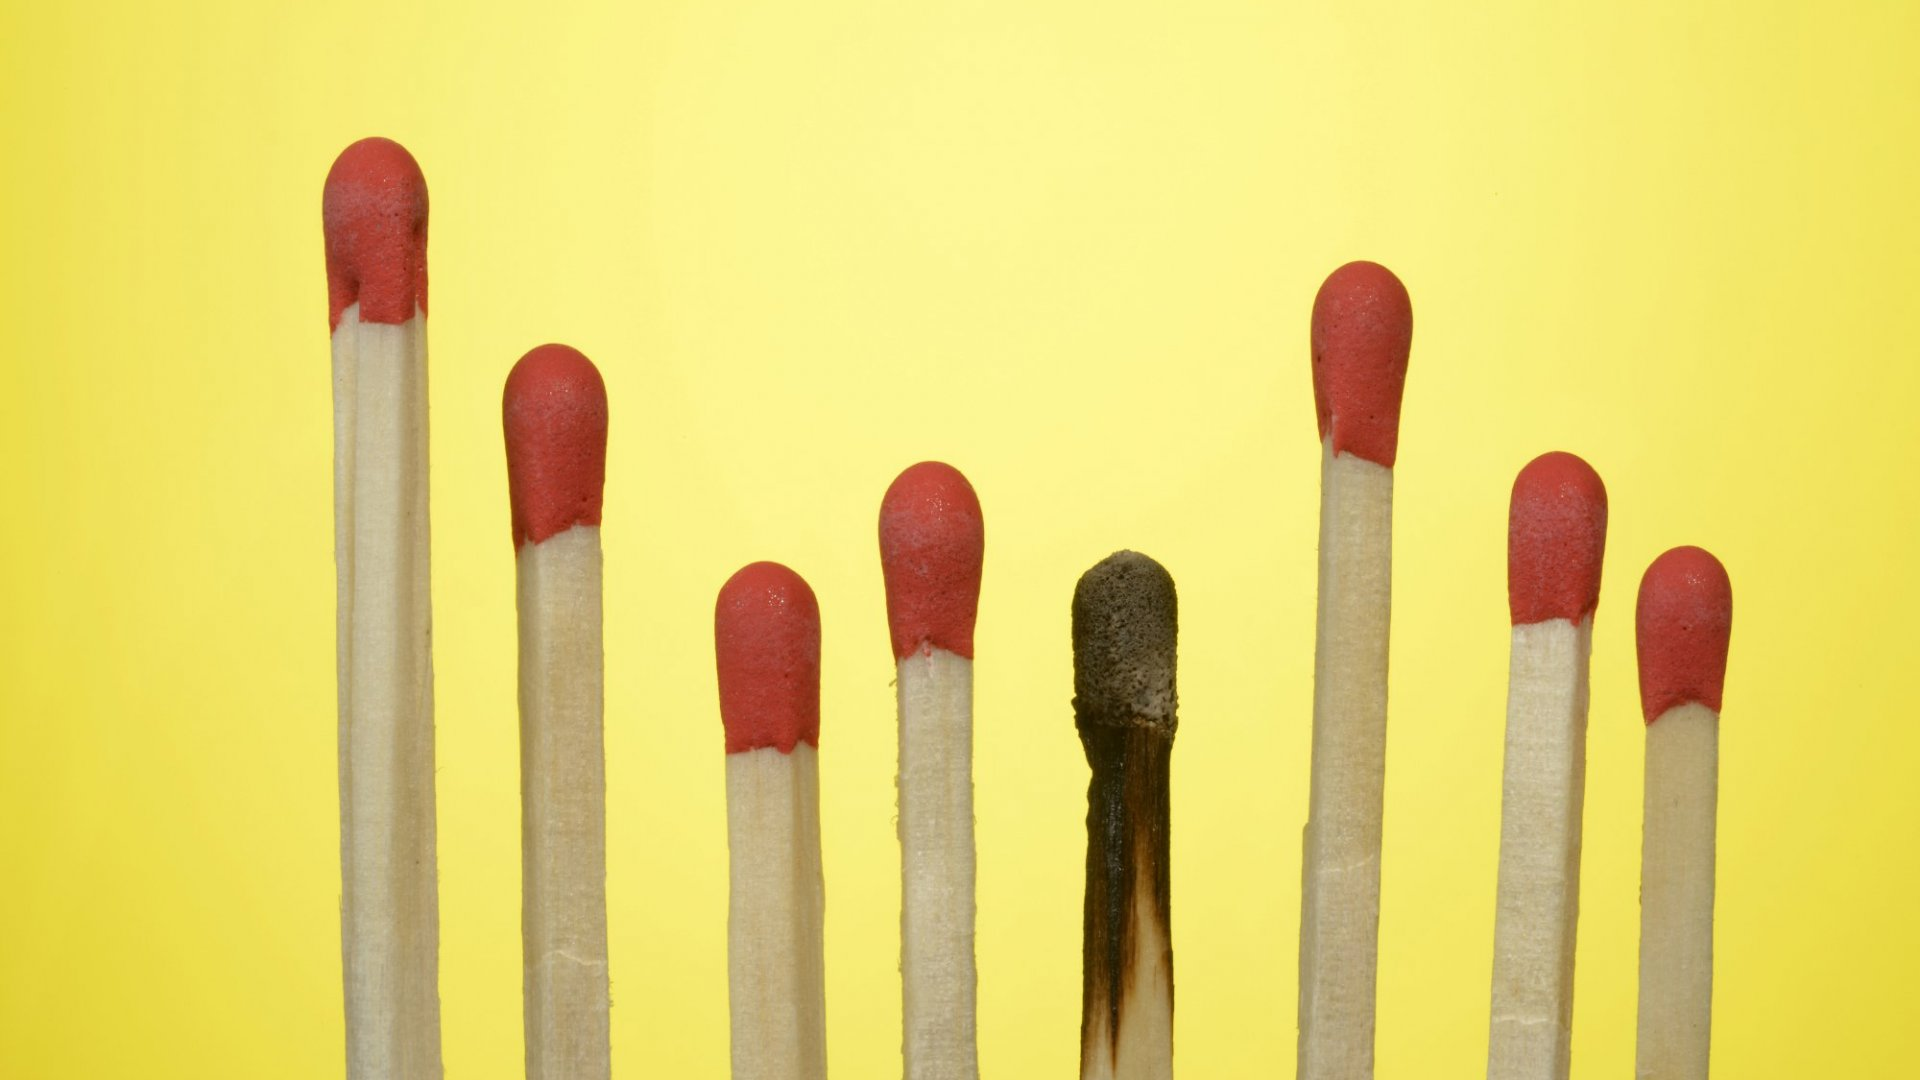 Feeling Burned Out as a Leader? Do This to Rediscover Your Purpose